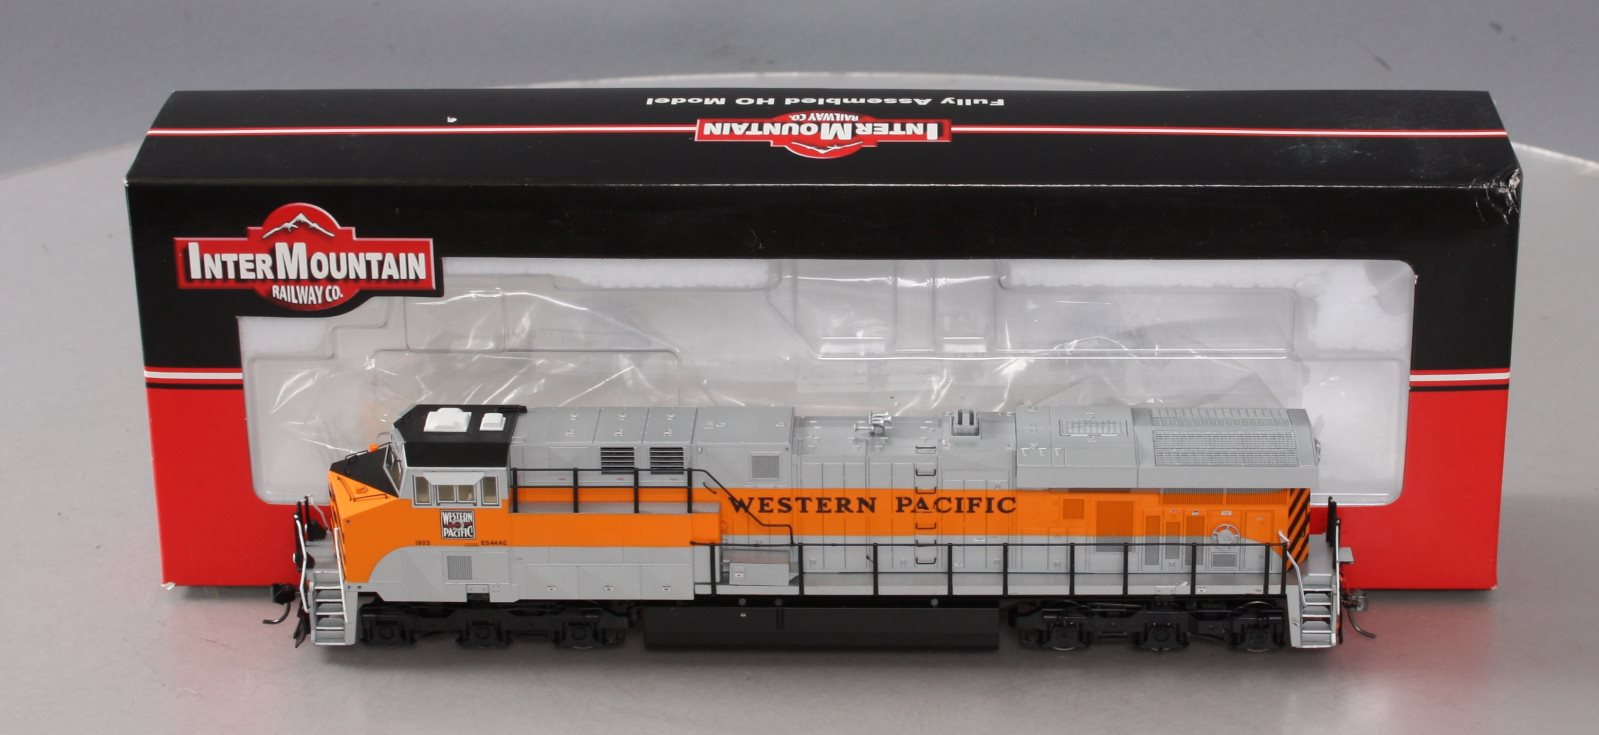 InterMountain 49760S-01 HO Scale Western Pacific ES44AC Diesel Locomotive with S 844201015360 InterMountain 49760S-01